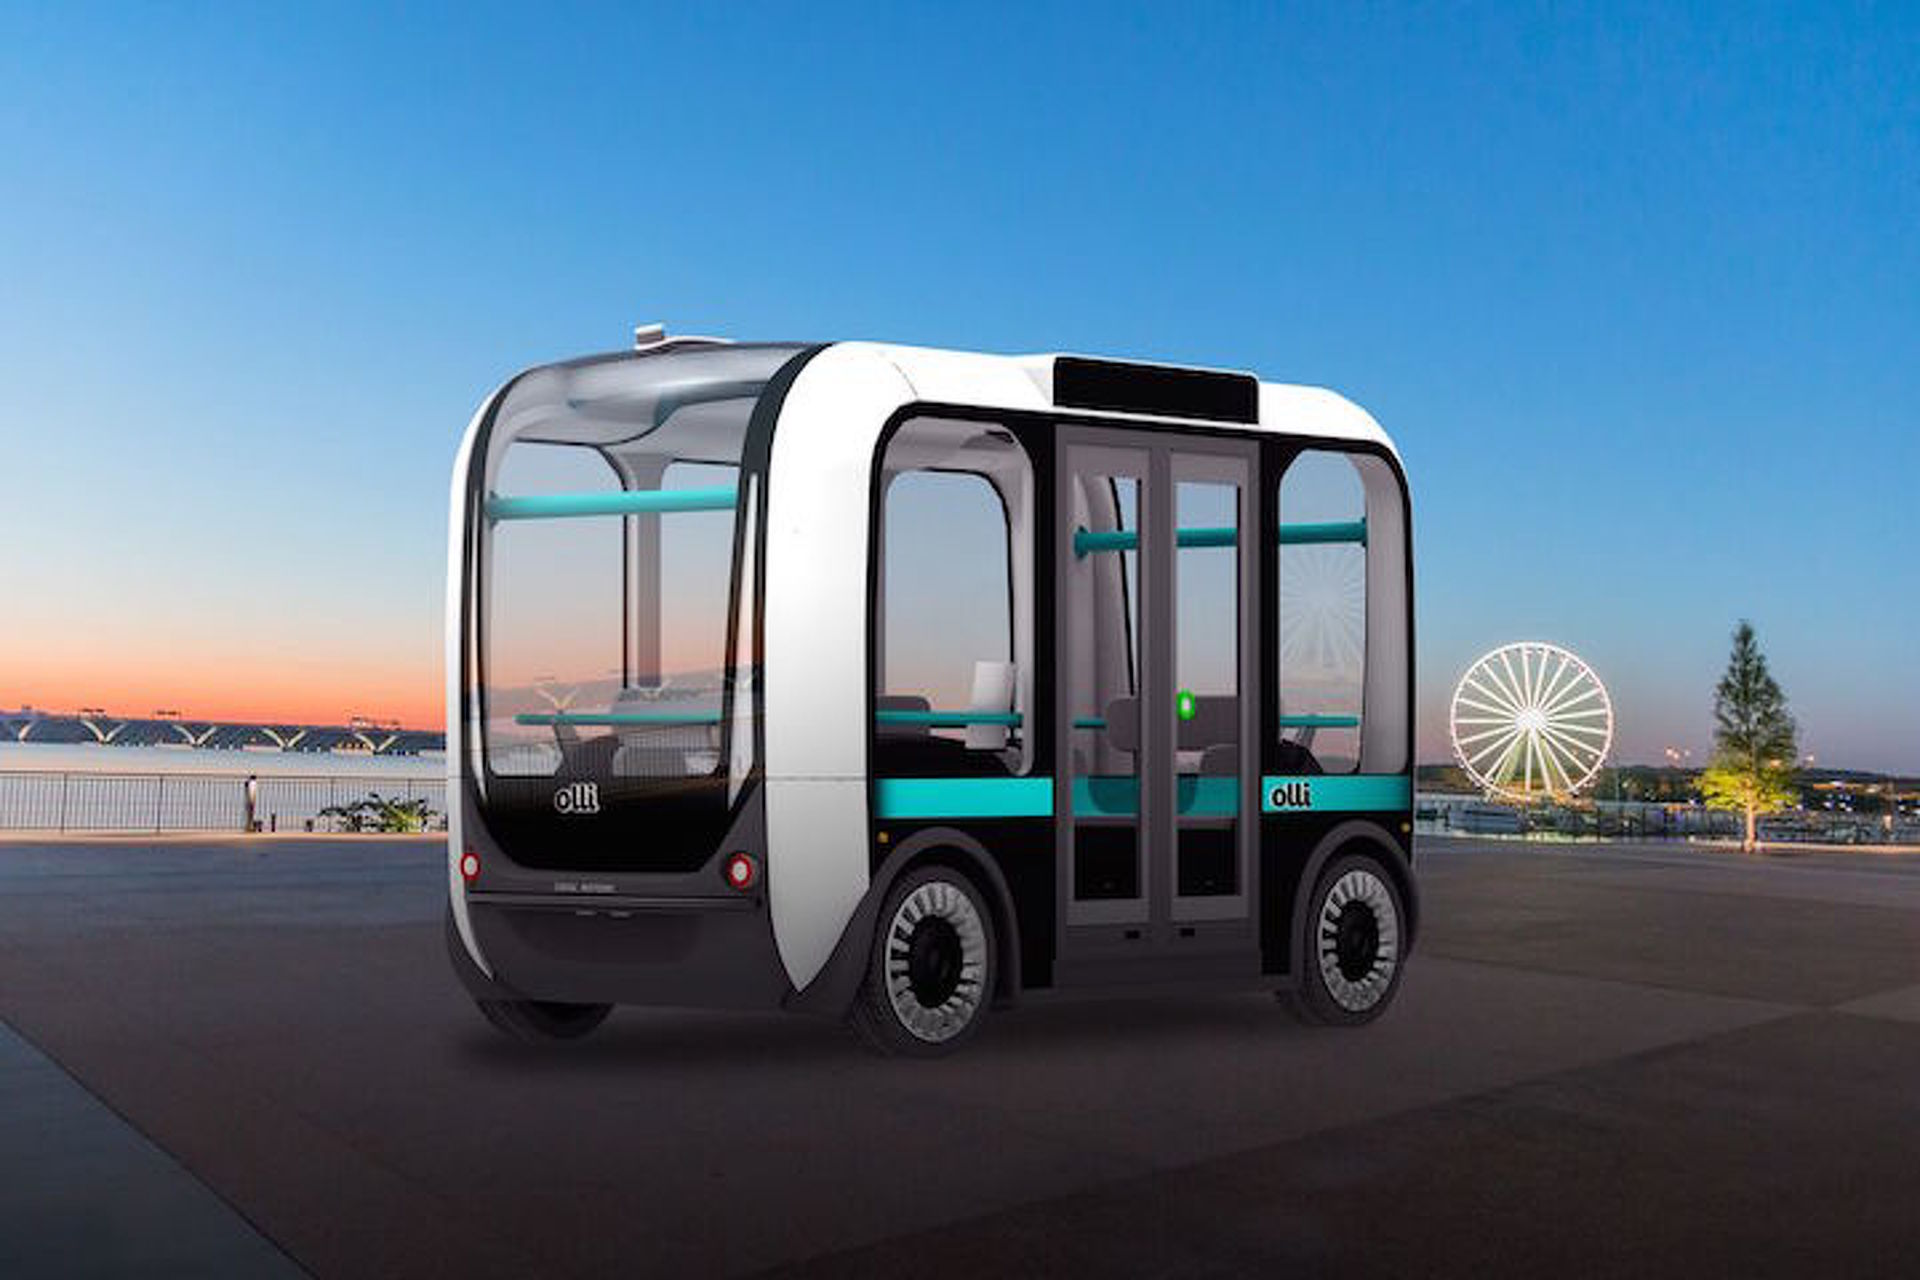 Meet Olli: The Self-Driving, Electric Bus Powered by IBM Watson